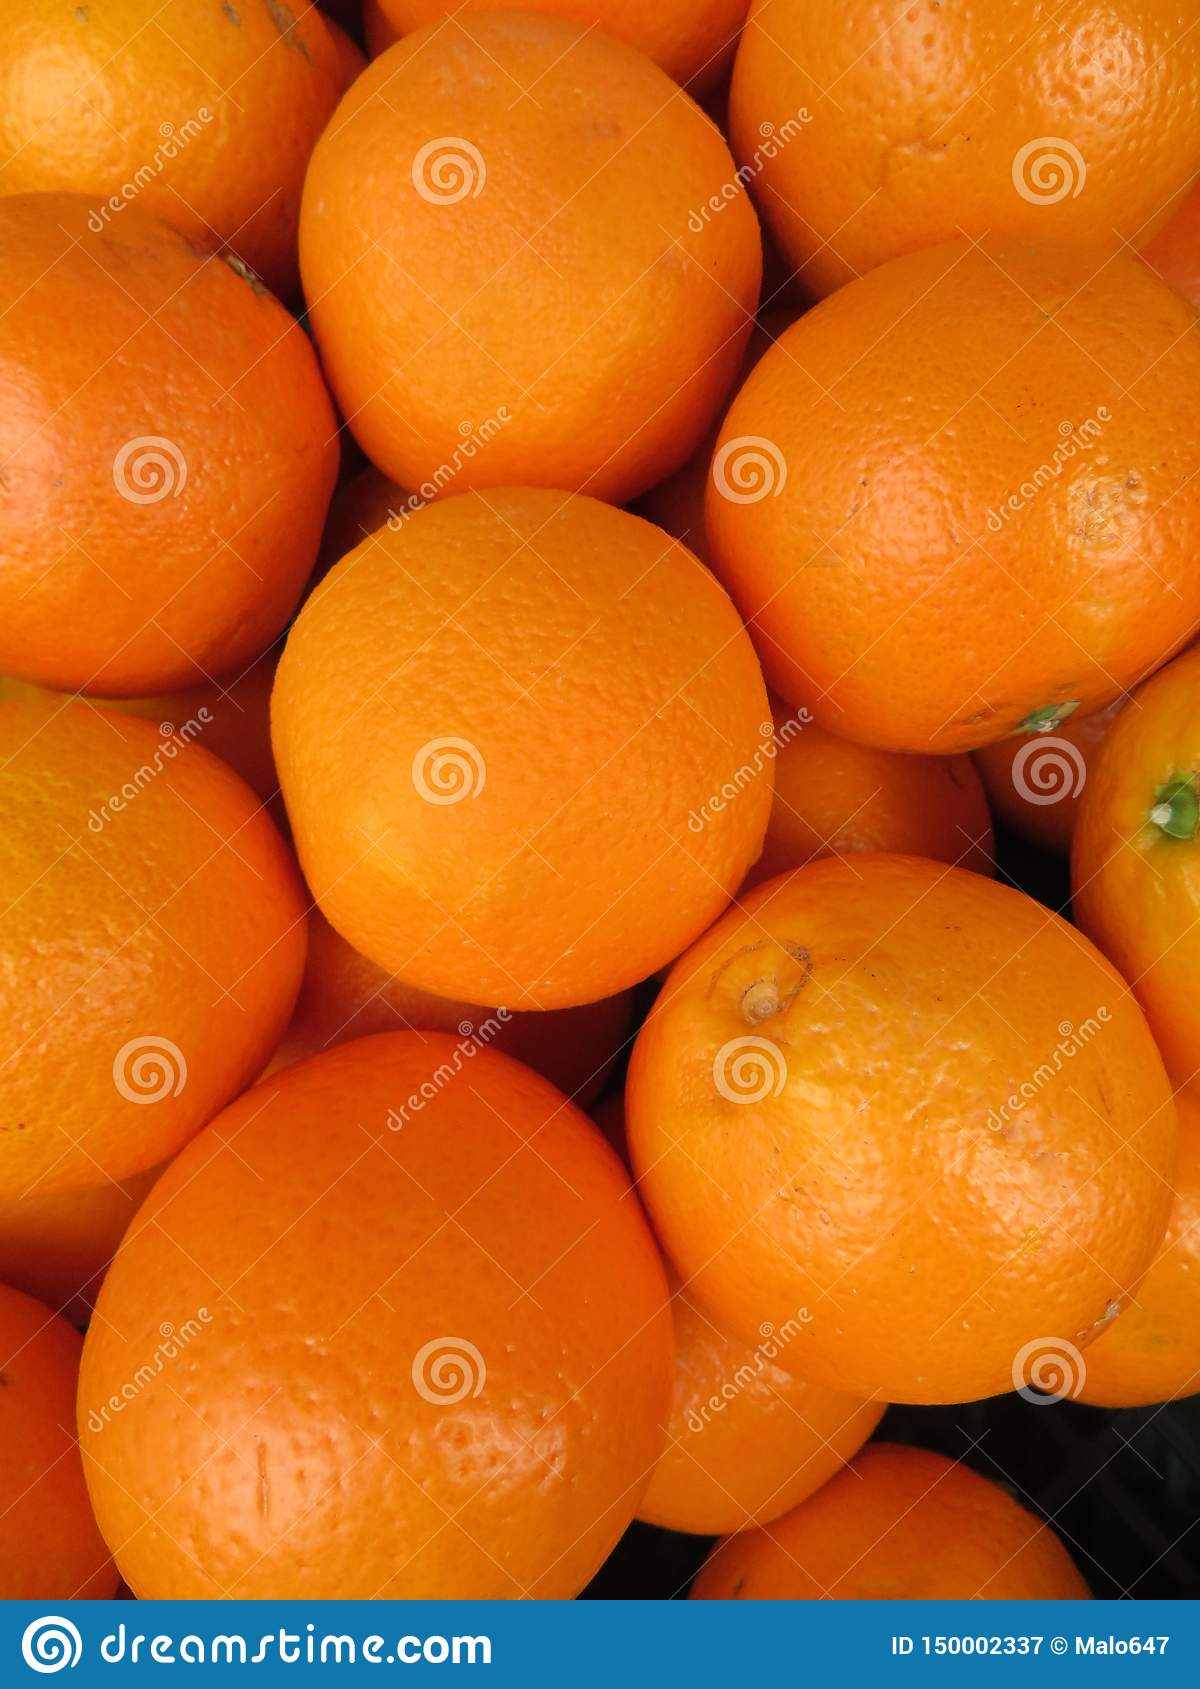 Beautiful oranges from an incredible color and a delicious flavor